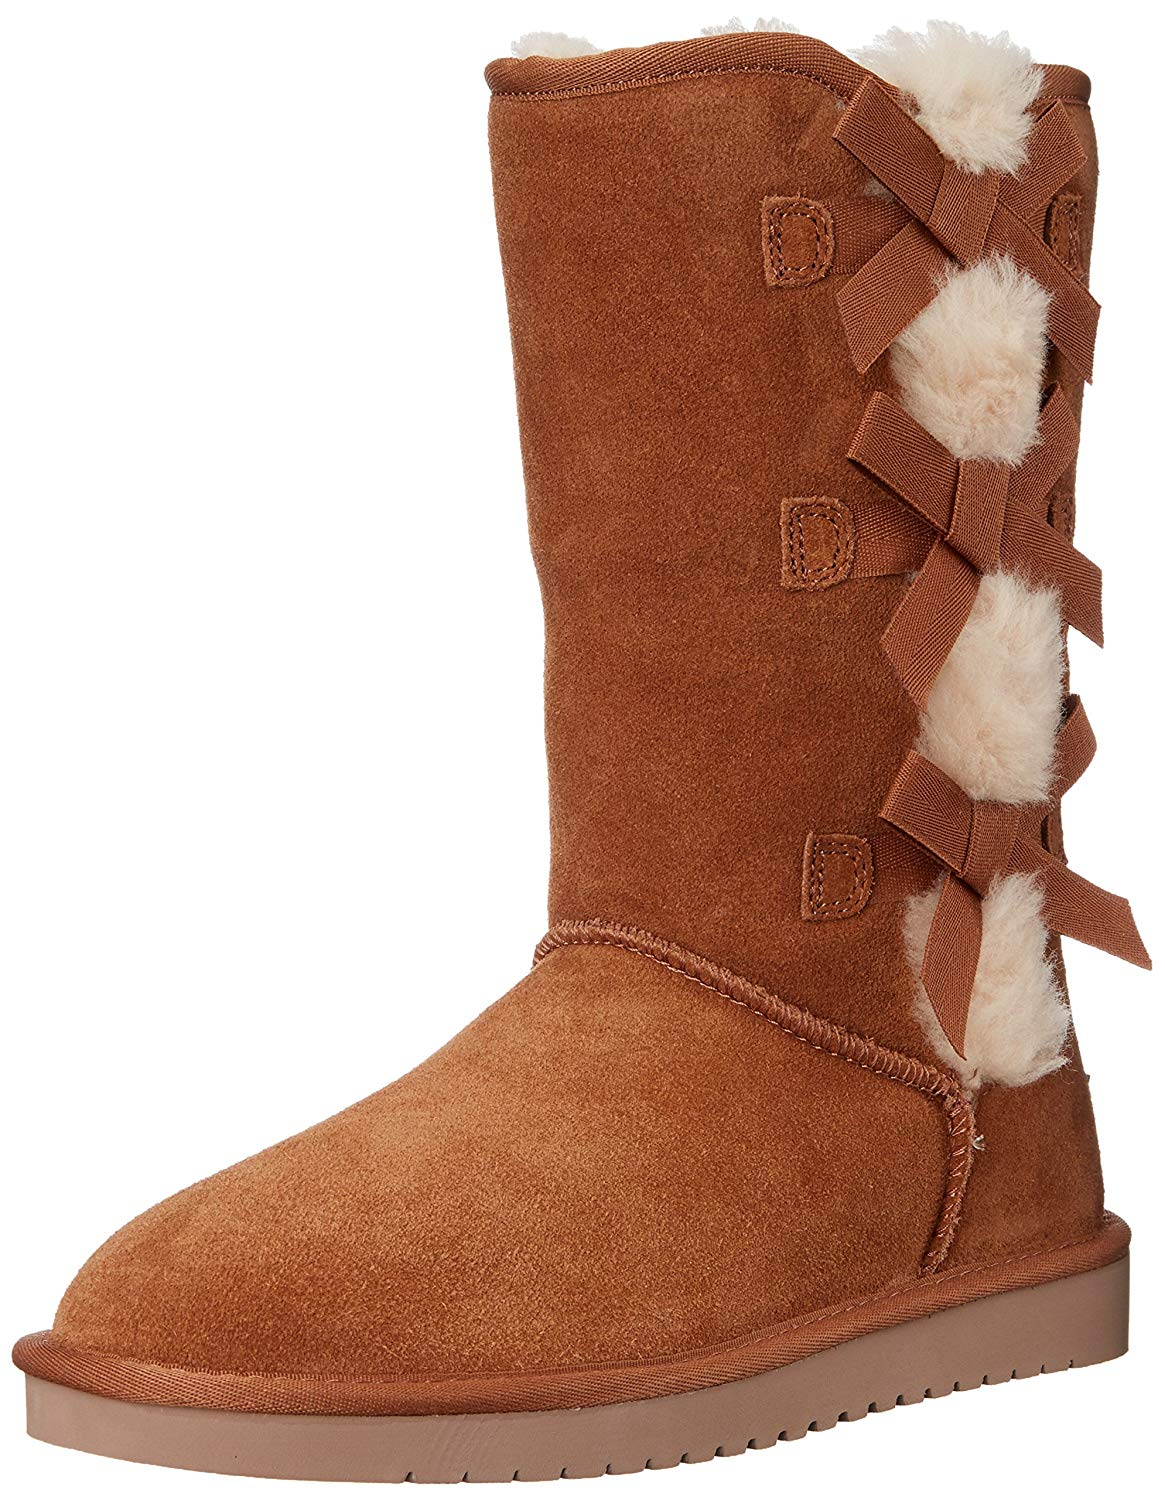 ebdfc96fb9a Details about Koolaburra by UGG Womens 1015875 Leather Round Toe Mid-Calf  Cold Weather Boots